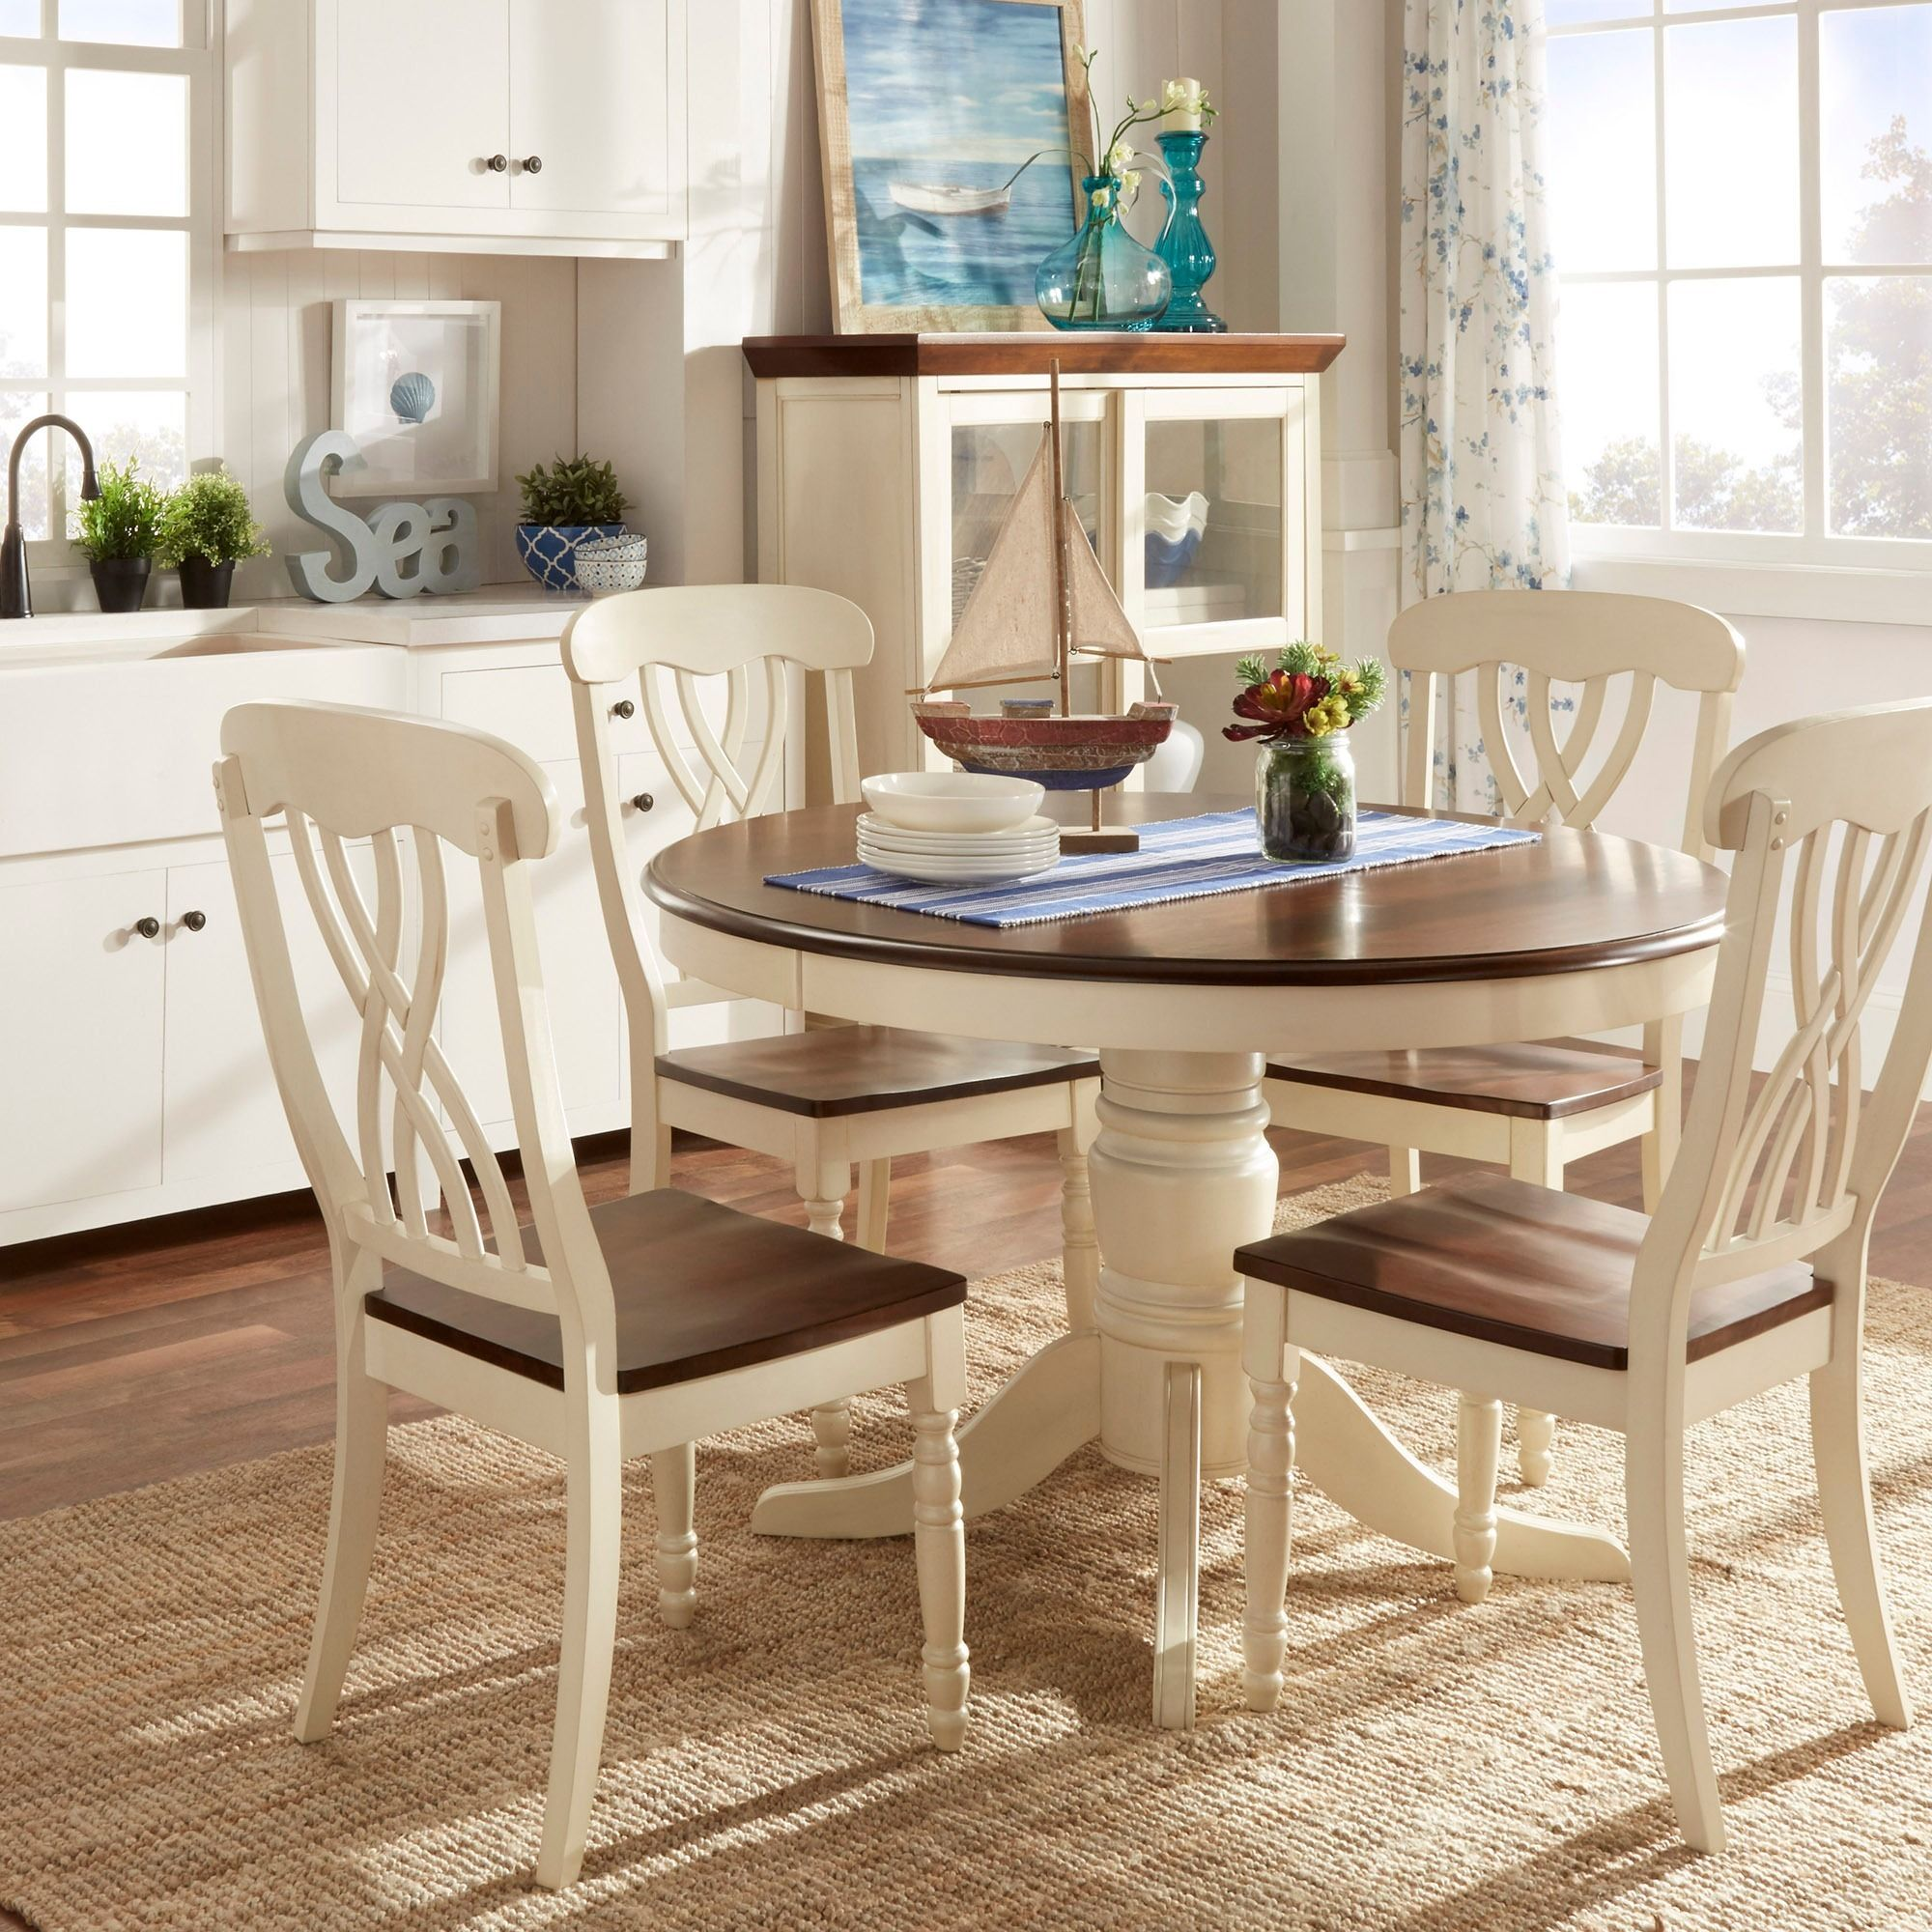 The Design Of This 5 Piece Dining Set From Mackenzie